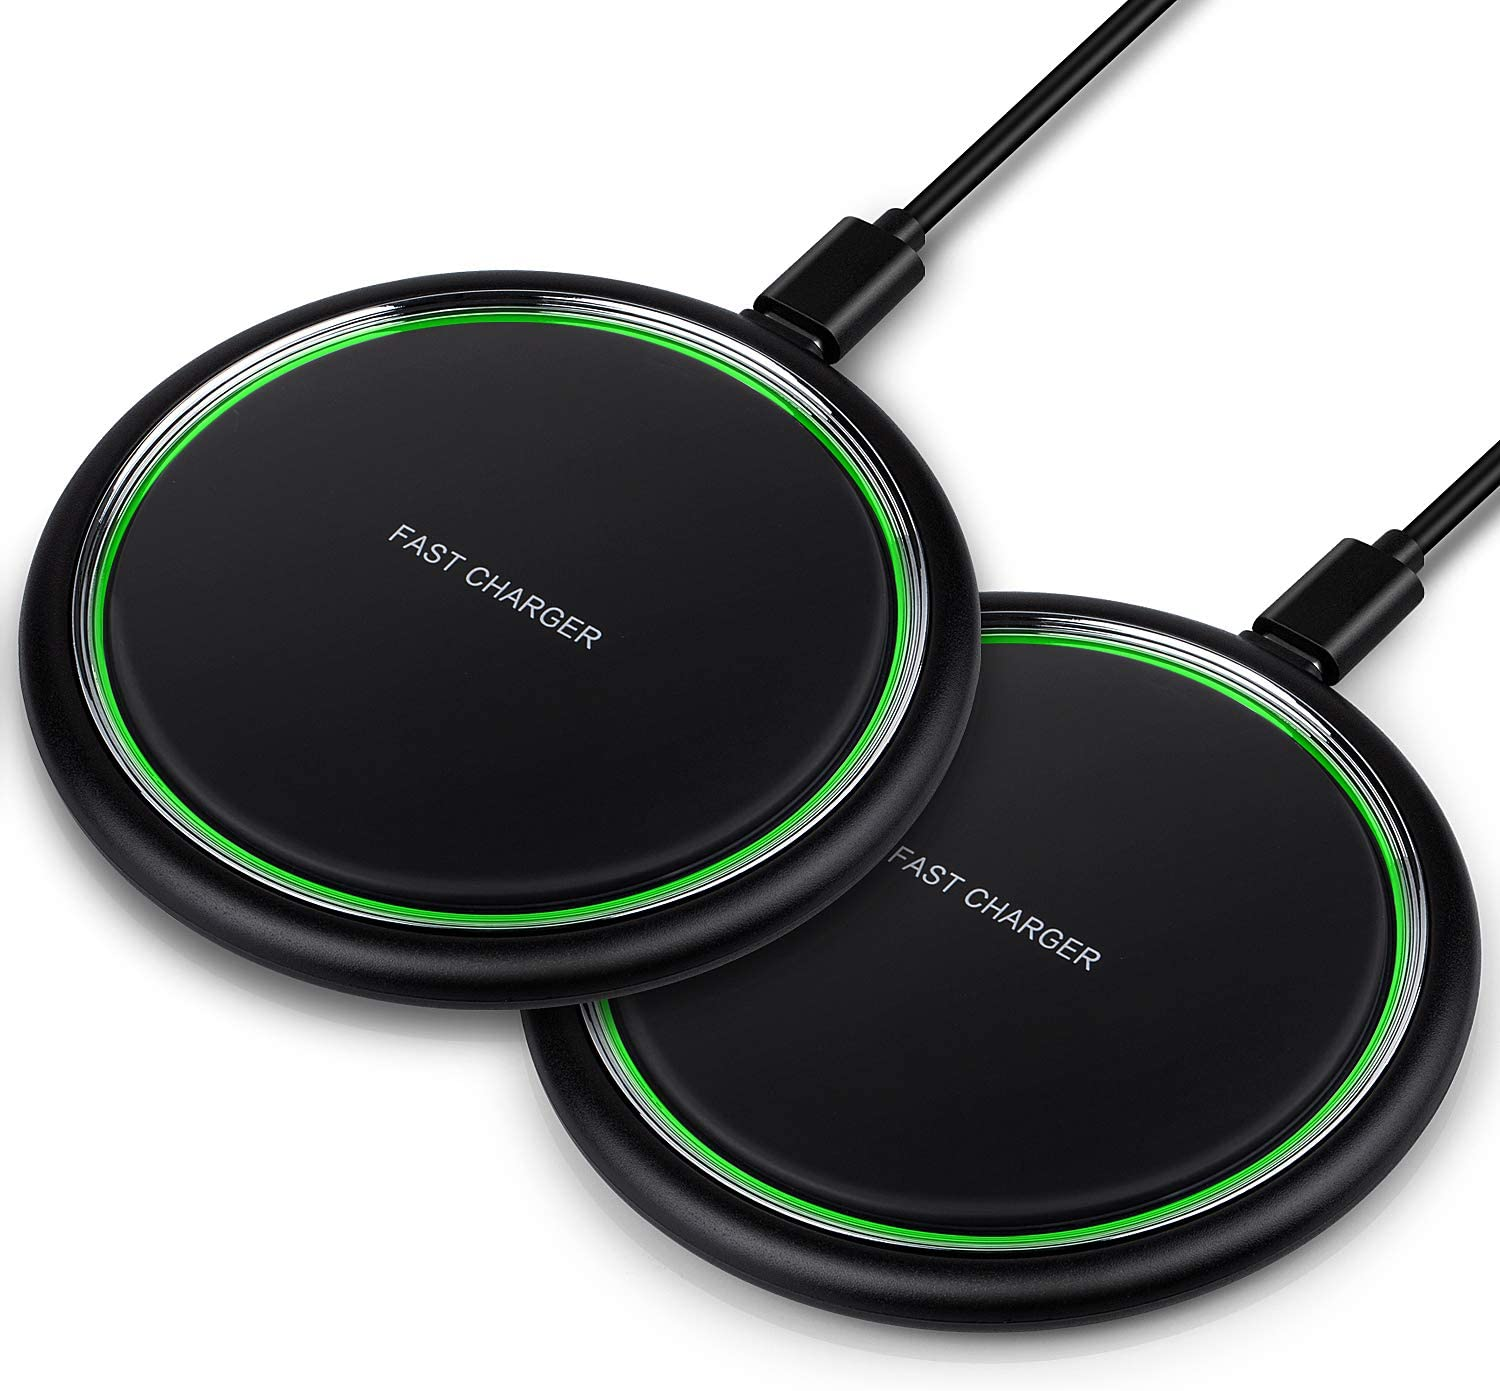 Wireless Charger, iSeekerKit 2 Pack 15W Max Fast Wireless Charging Pad Compatible for iPhone 11 Pro/XR/XS/X/8, Galaxy S10/S10e/Note10/9, Google Pixel 3/3XL, LG V30 V40(No Adapter)